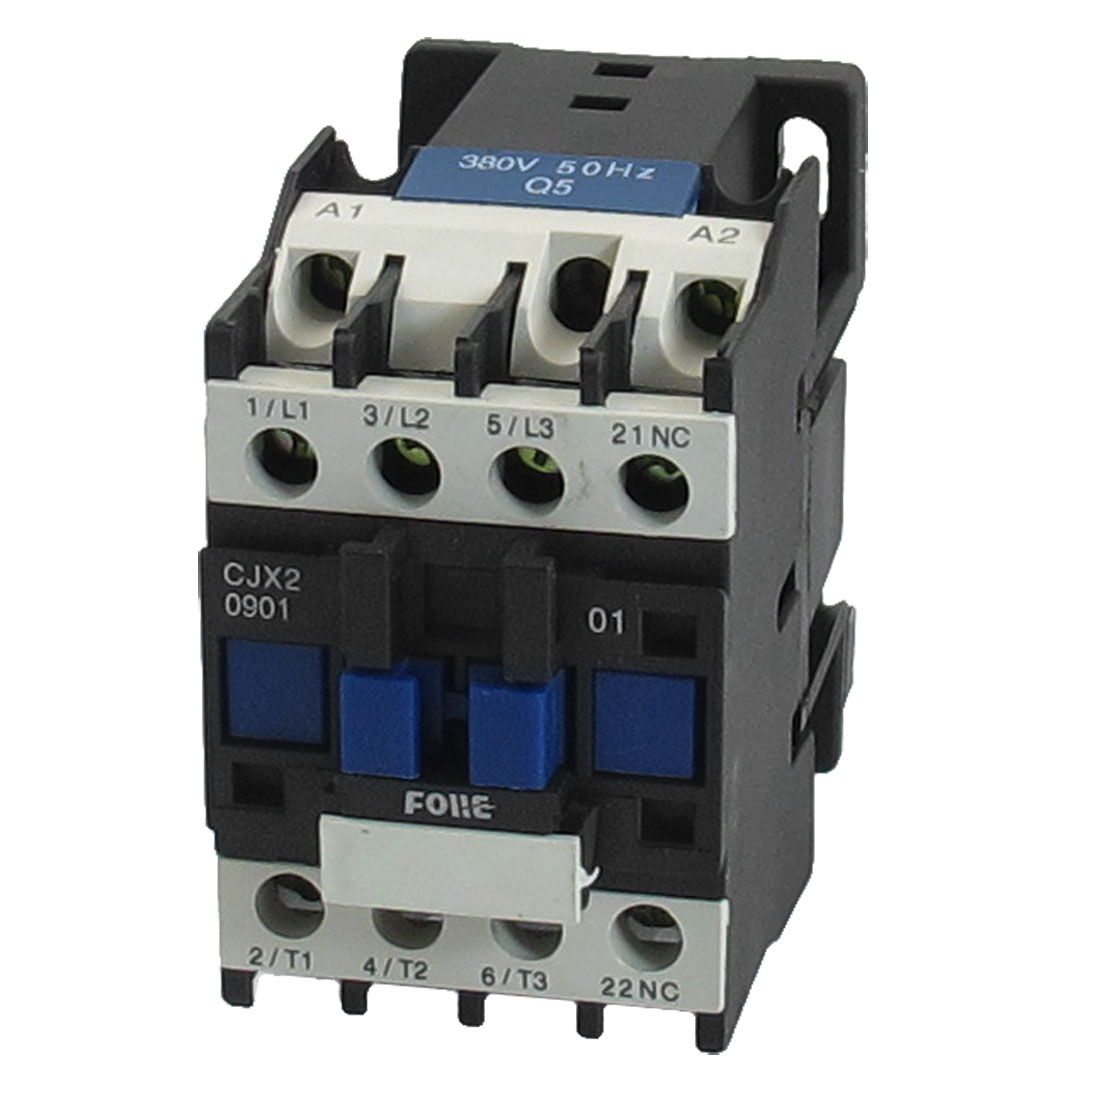 660V 5.5KW 3 Phase 3P N/C AC Contactor DIN Rail Mount 380V Coil CJX2-0901